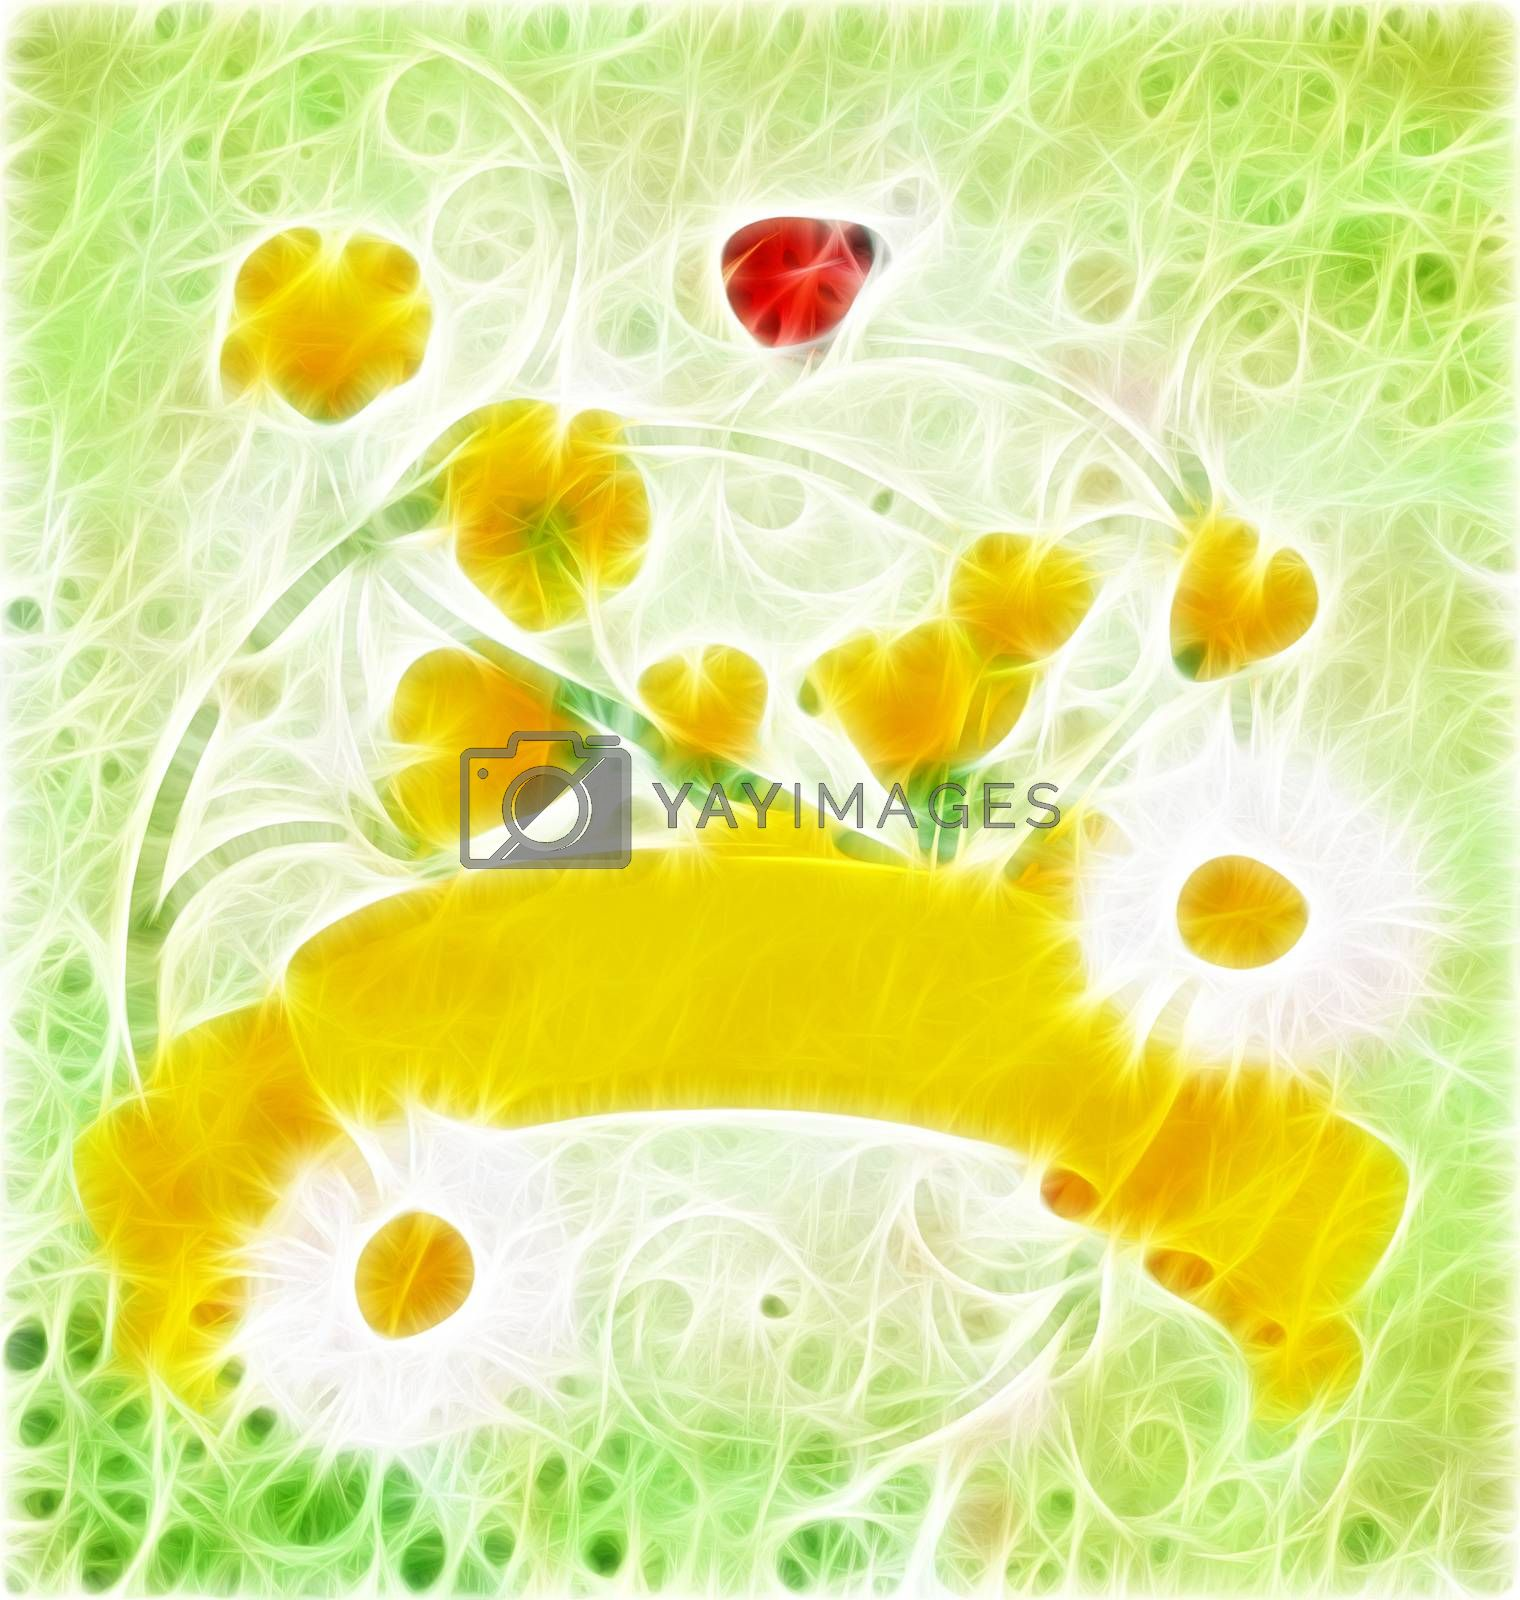 Royalty free image of yellow grunge scroll nature illustration by CherJu